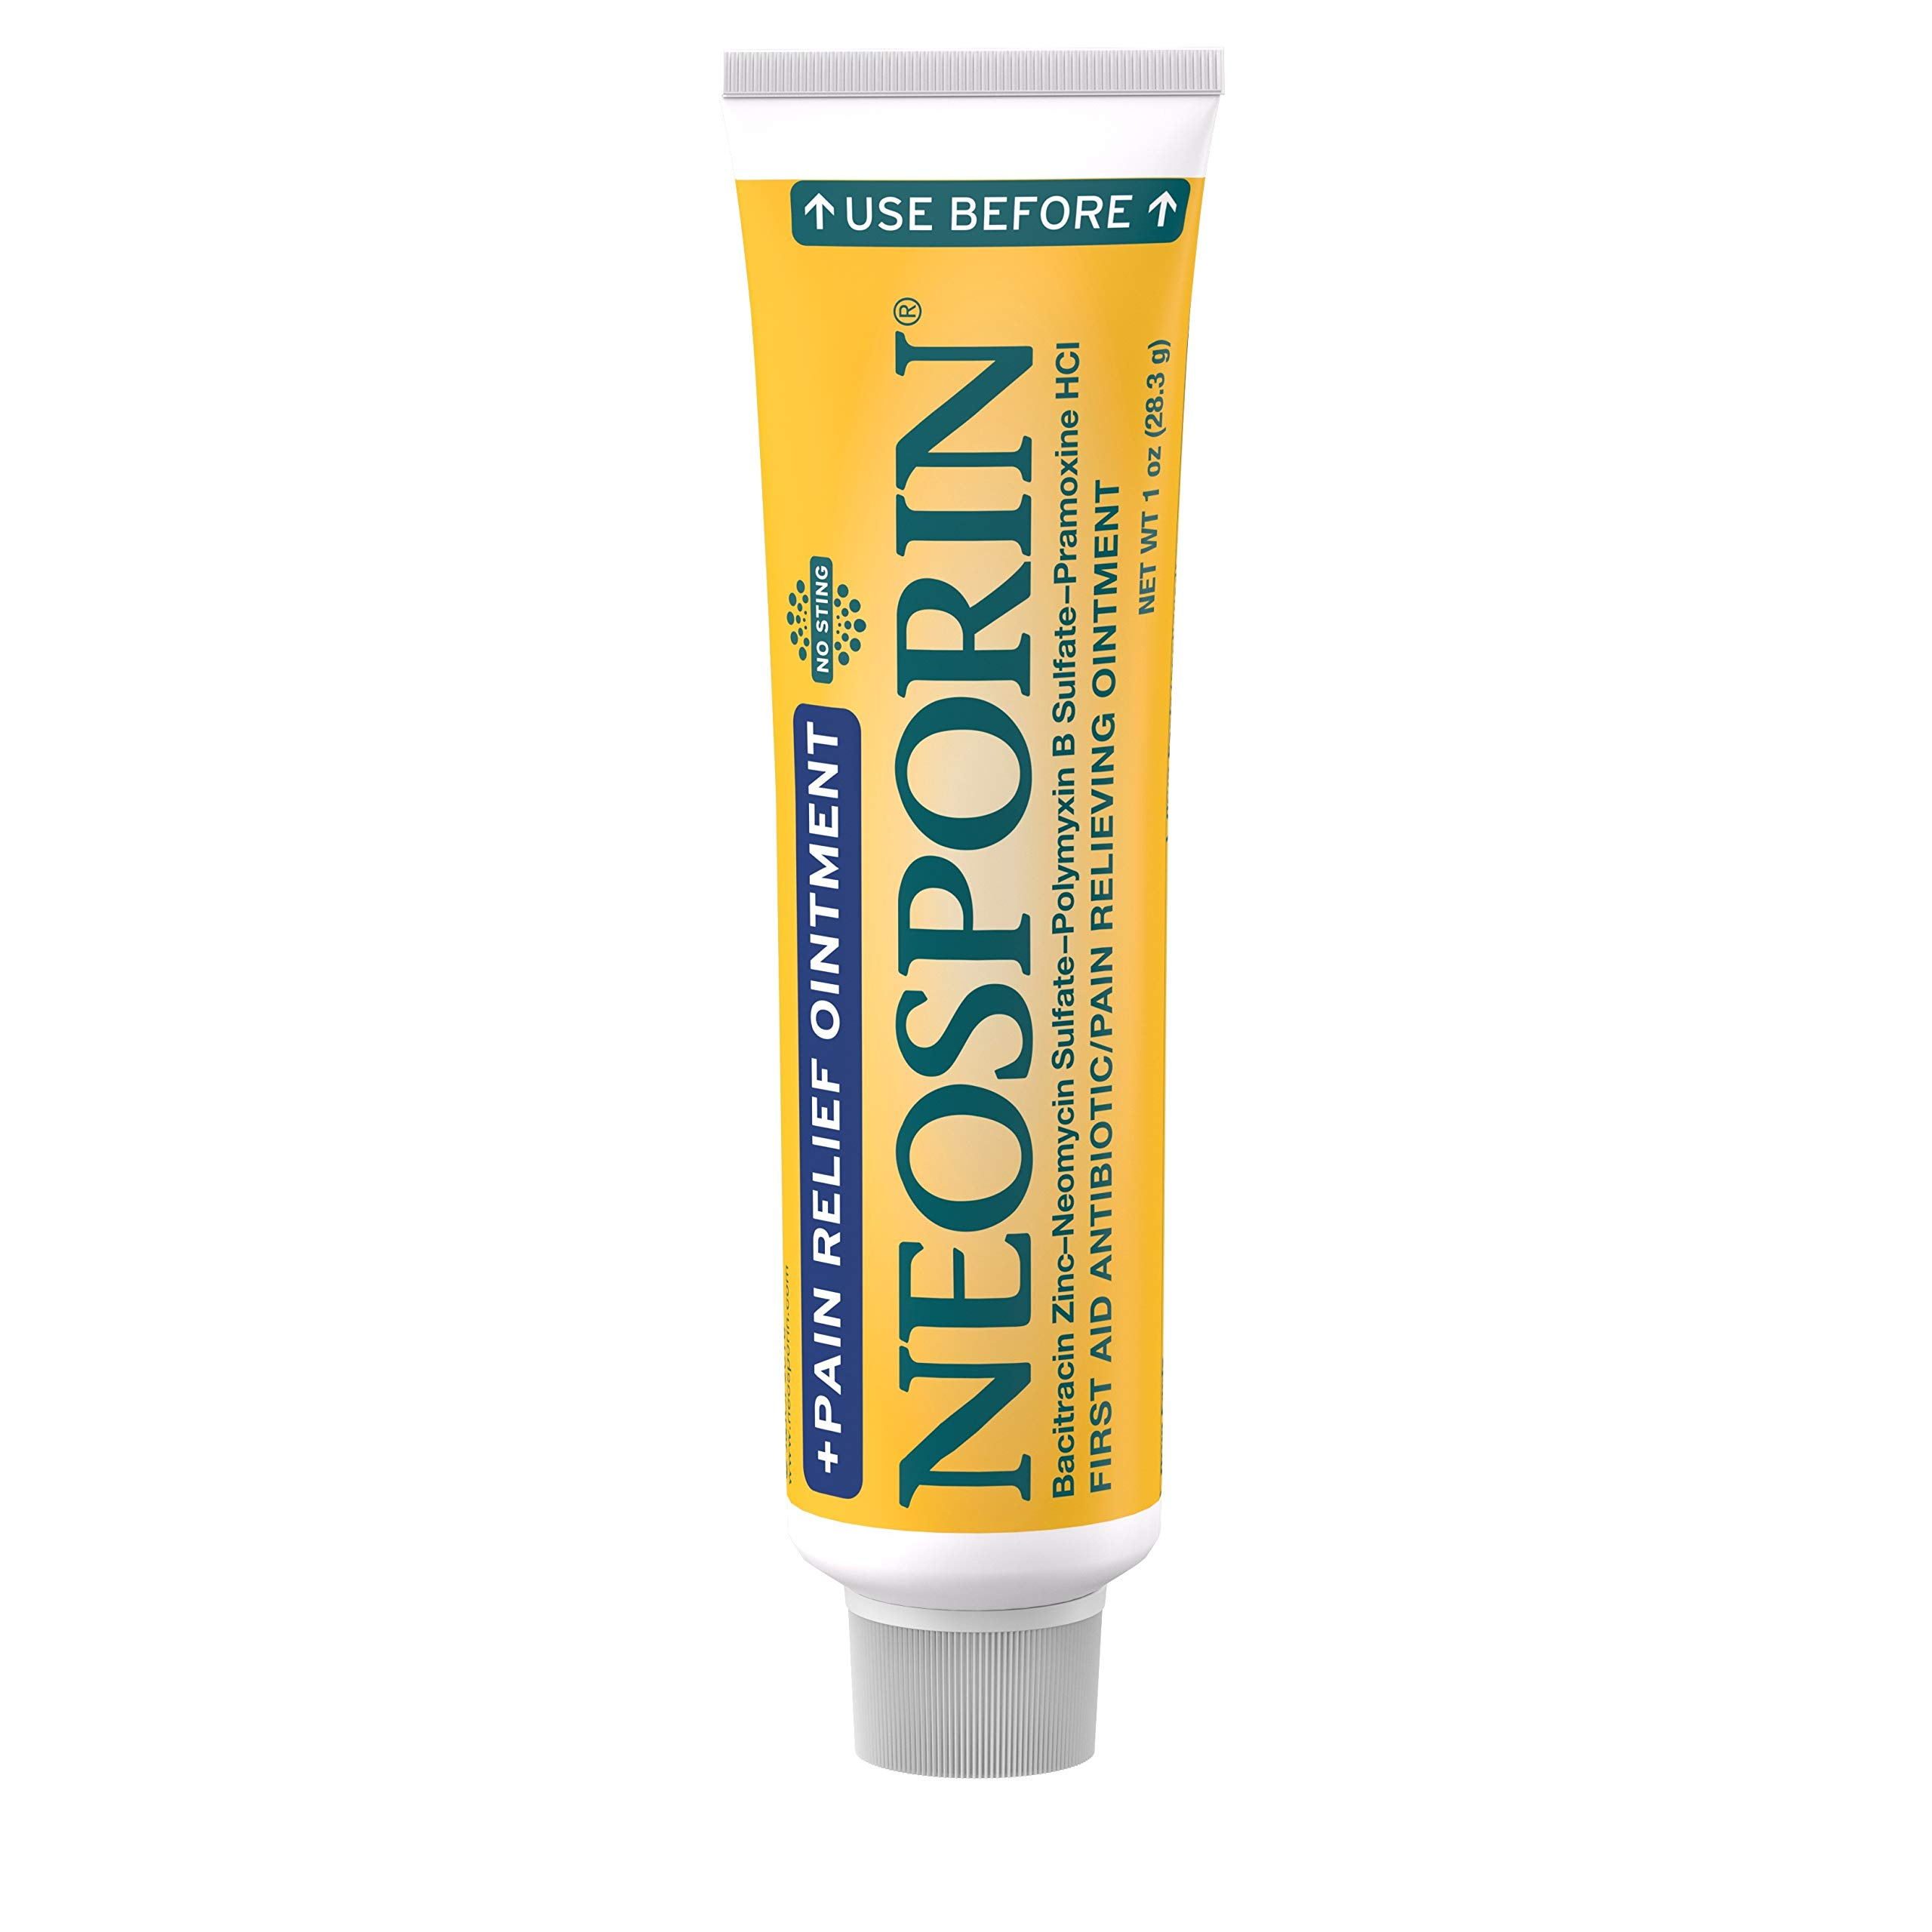 Neosporin + Maximum-Strength Pain Relief Dual Action Ointment, First Aid Topical Antibiotic & Analgesic Ointment for 24-Hour Infection Protection with Bacitracin Zinc & Pramoxine HCl, 1 oz